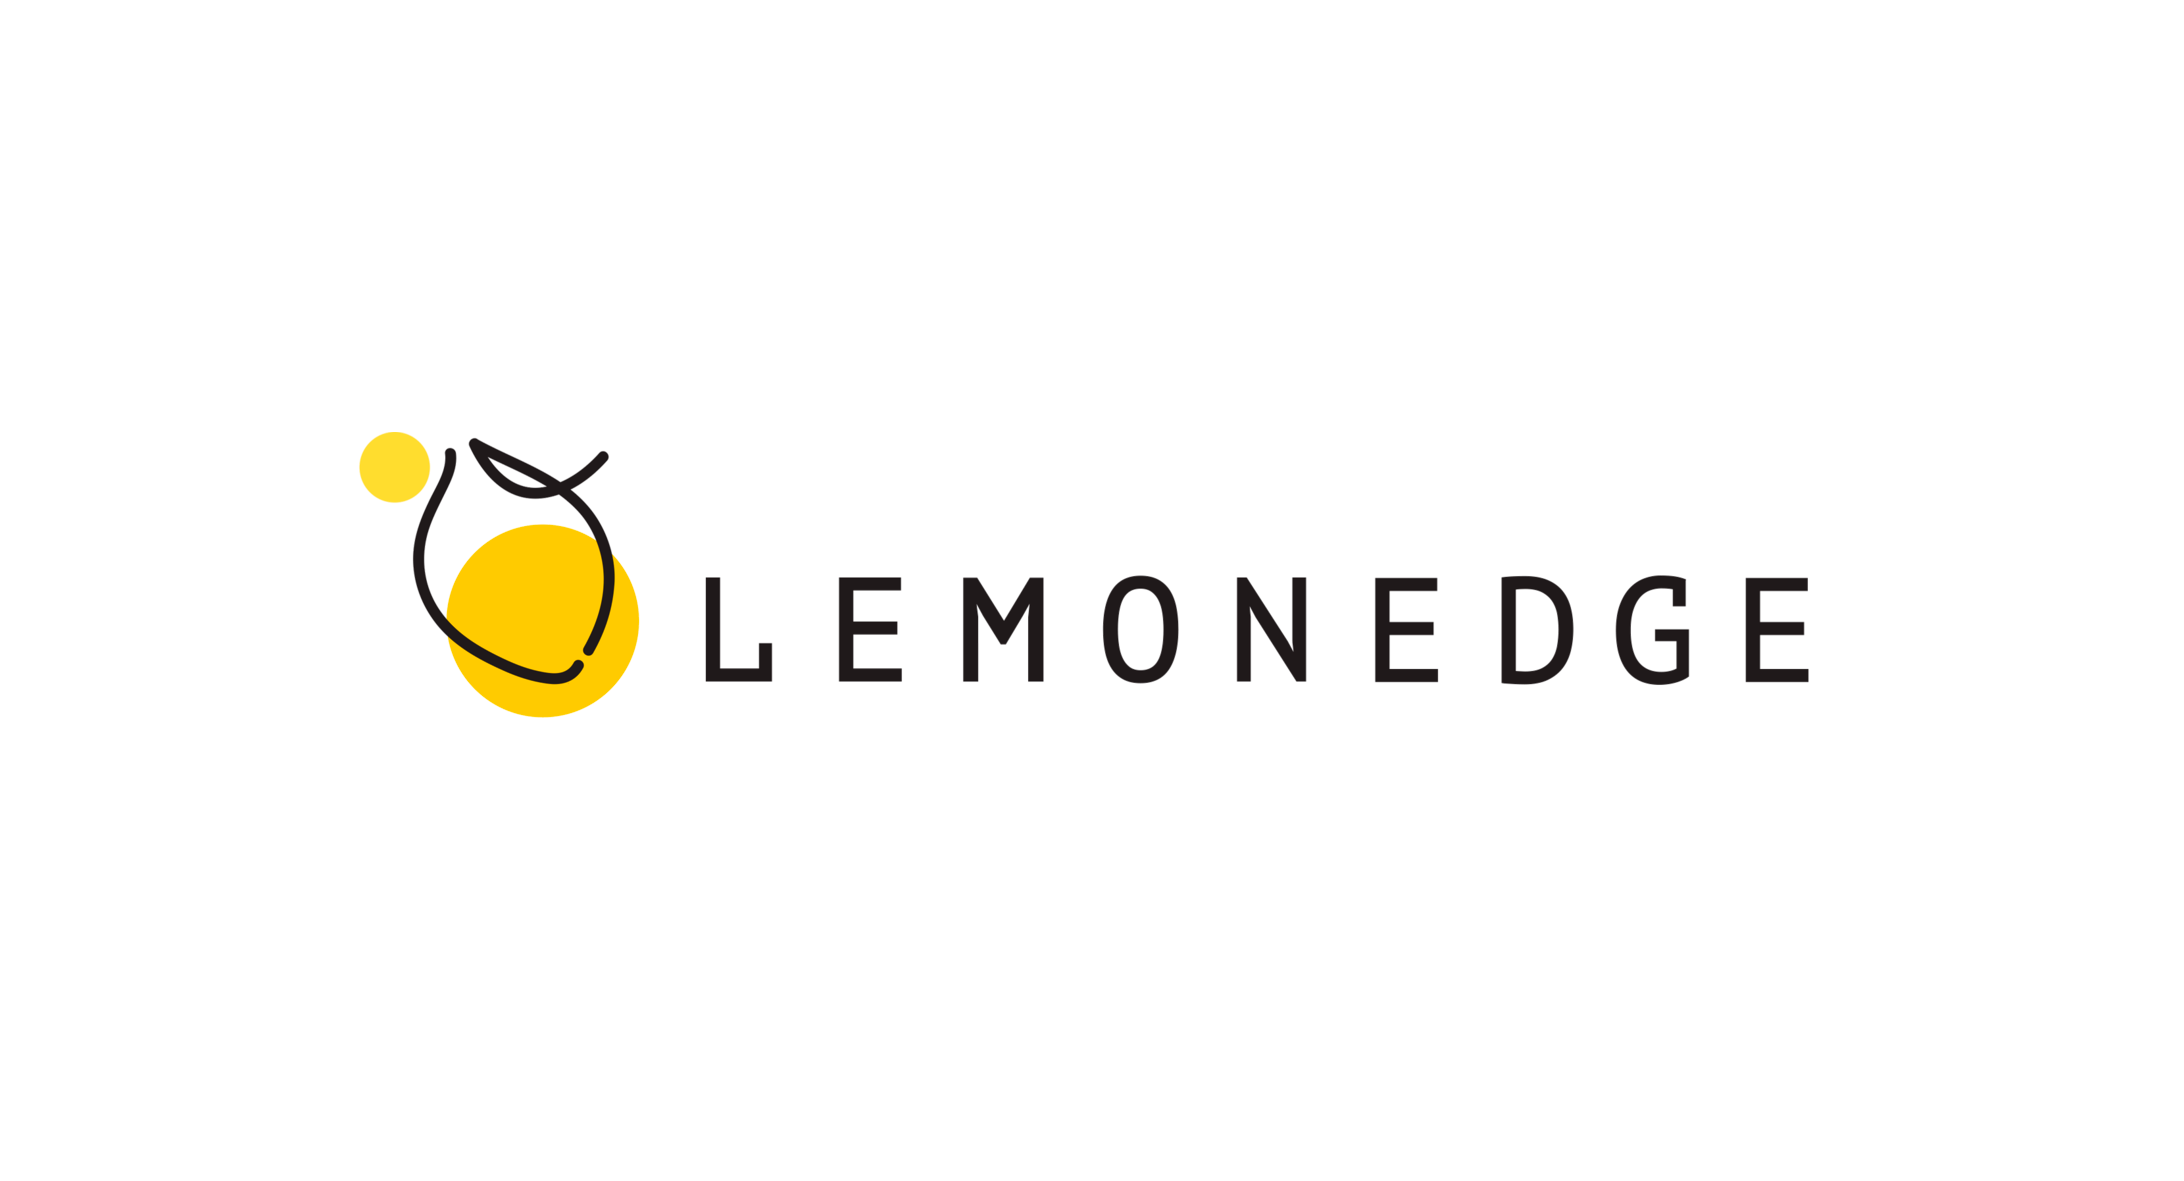 LemonEdge Raises $2.5 Million in Mission to Digitise Complex Accounting for the Private Equity and Financial Services Industries